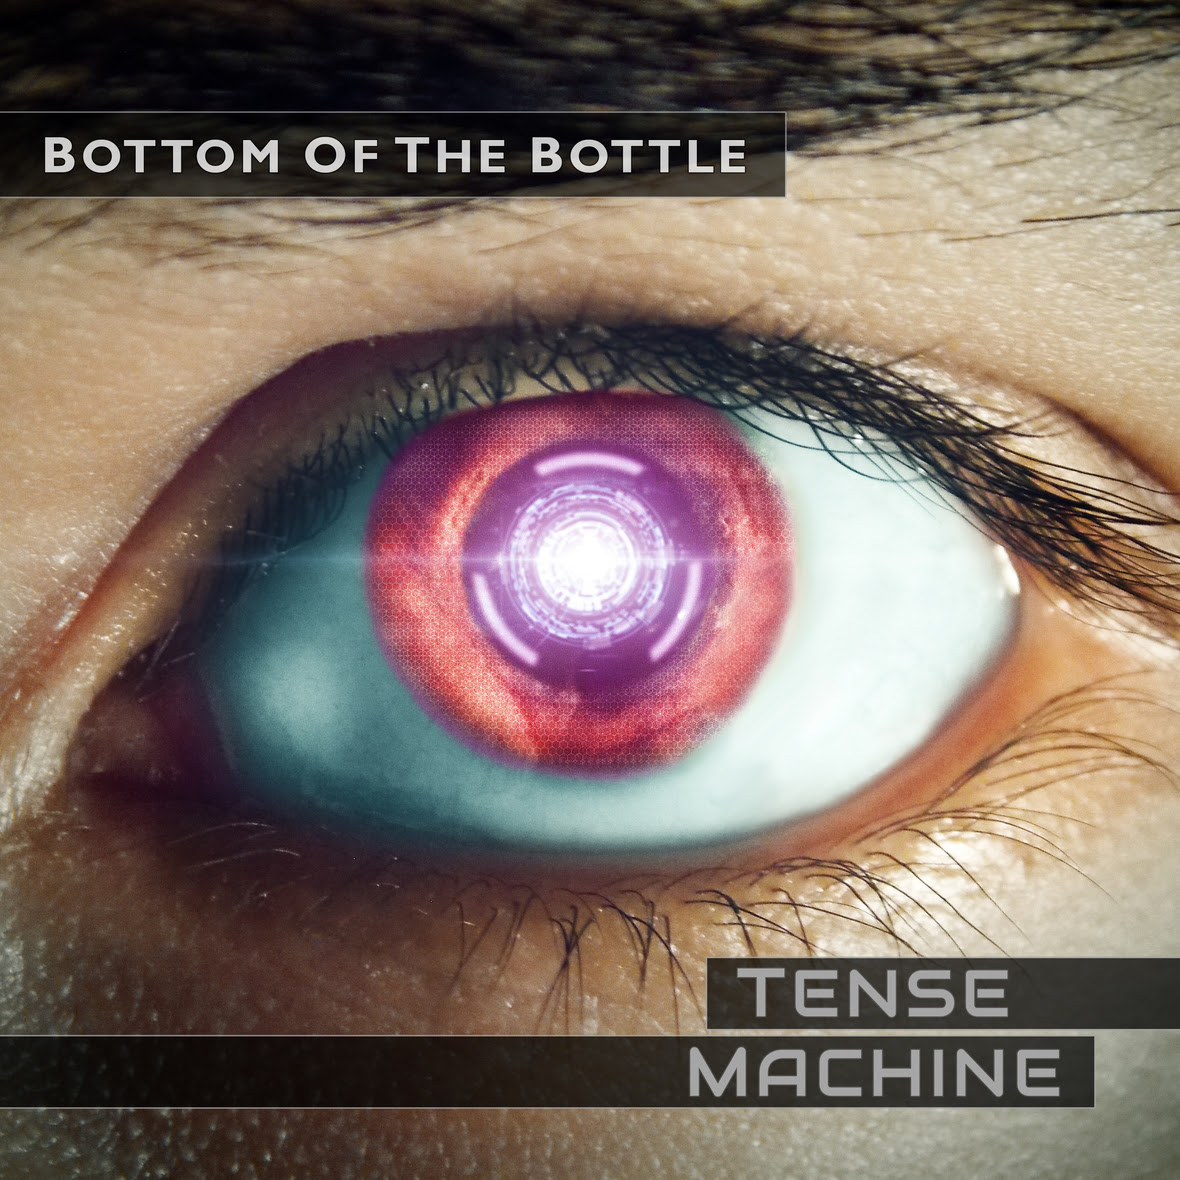 TenseMachine Artwork Bottle 3000X3000